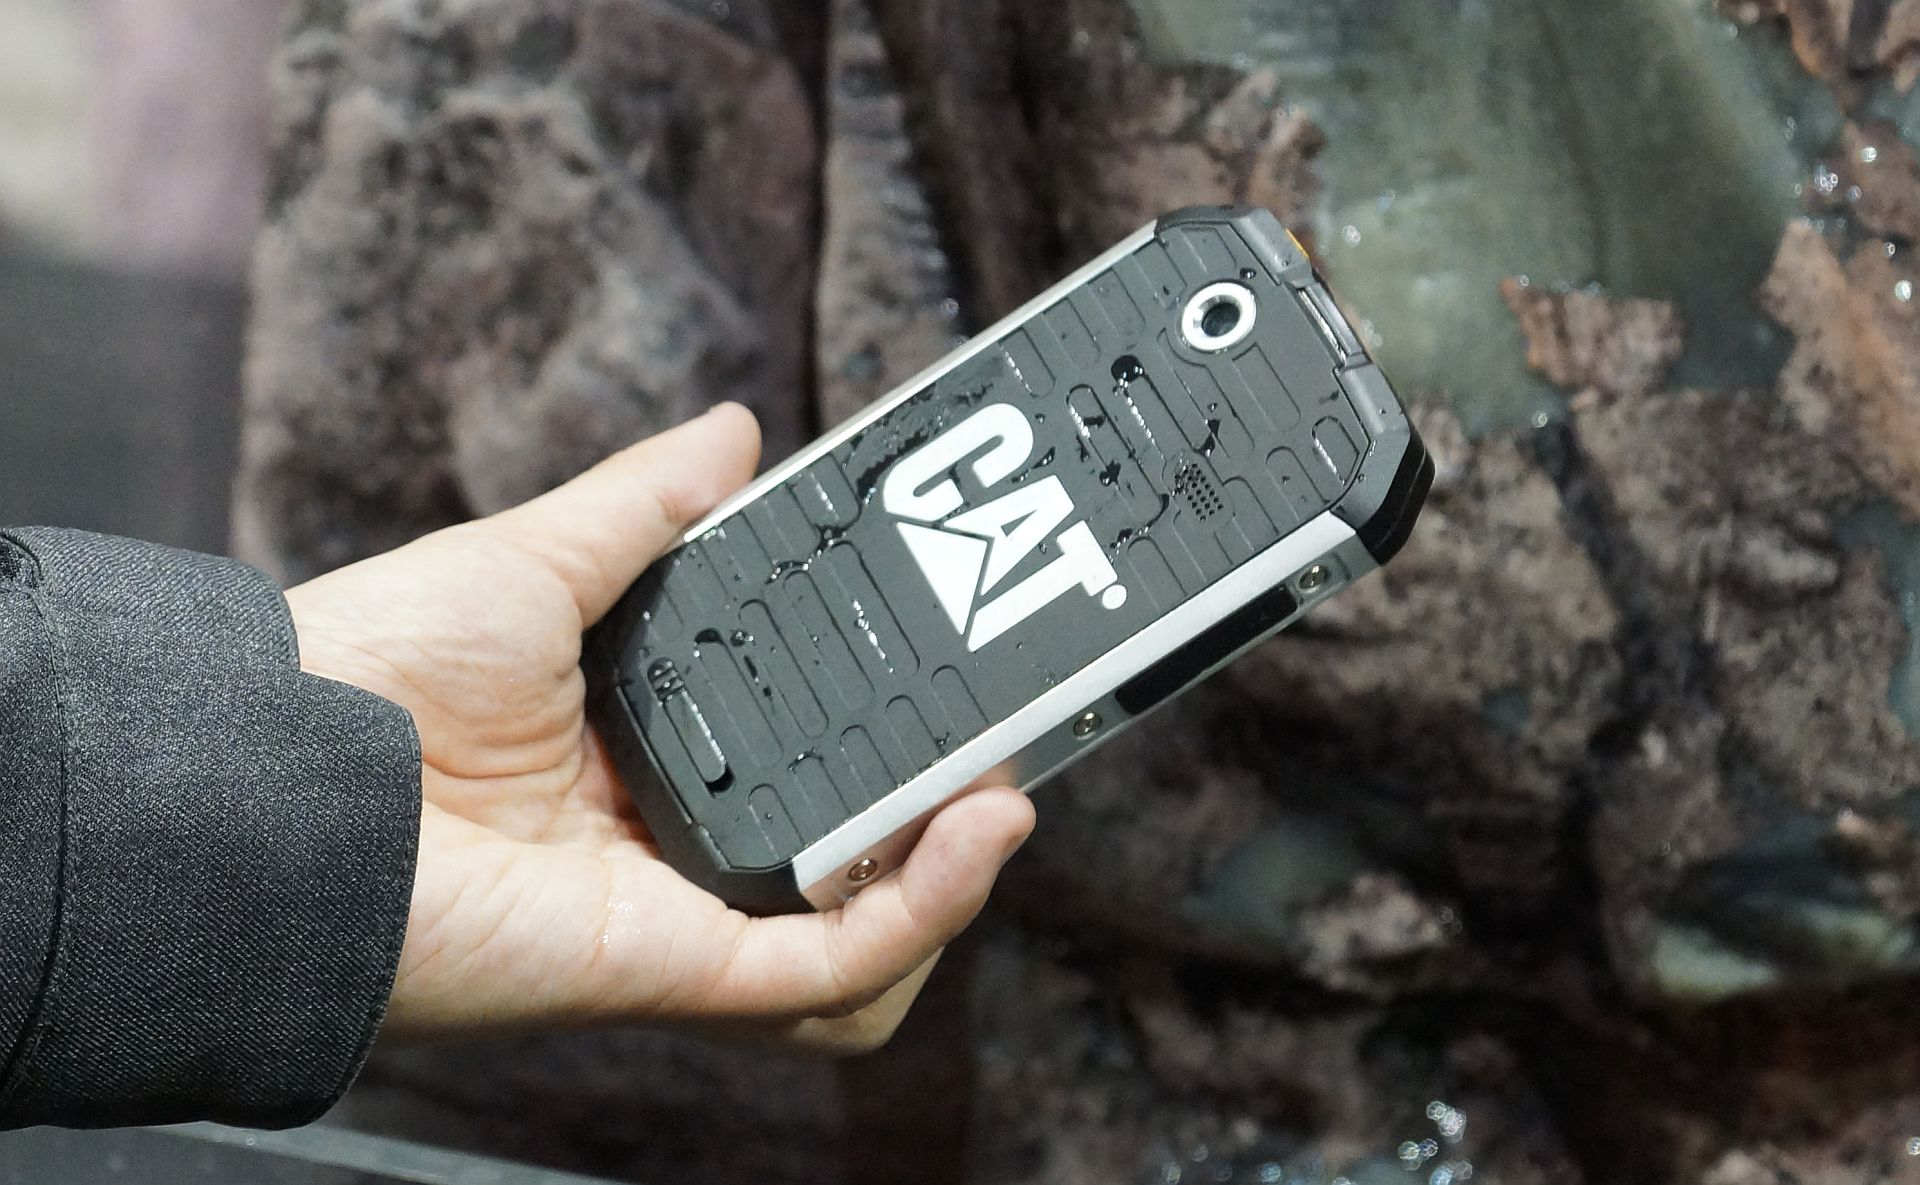 CAT B15 – Un smartphone militar [+VIDEO]